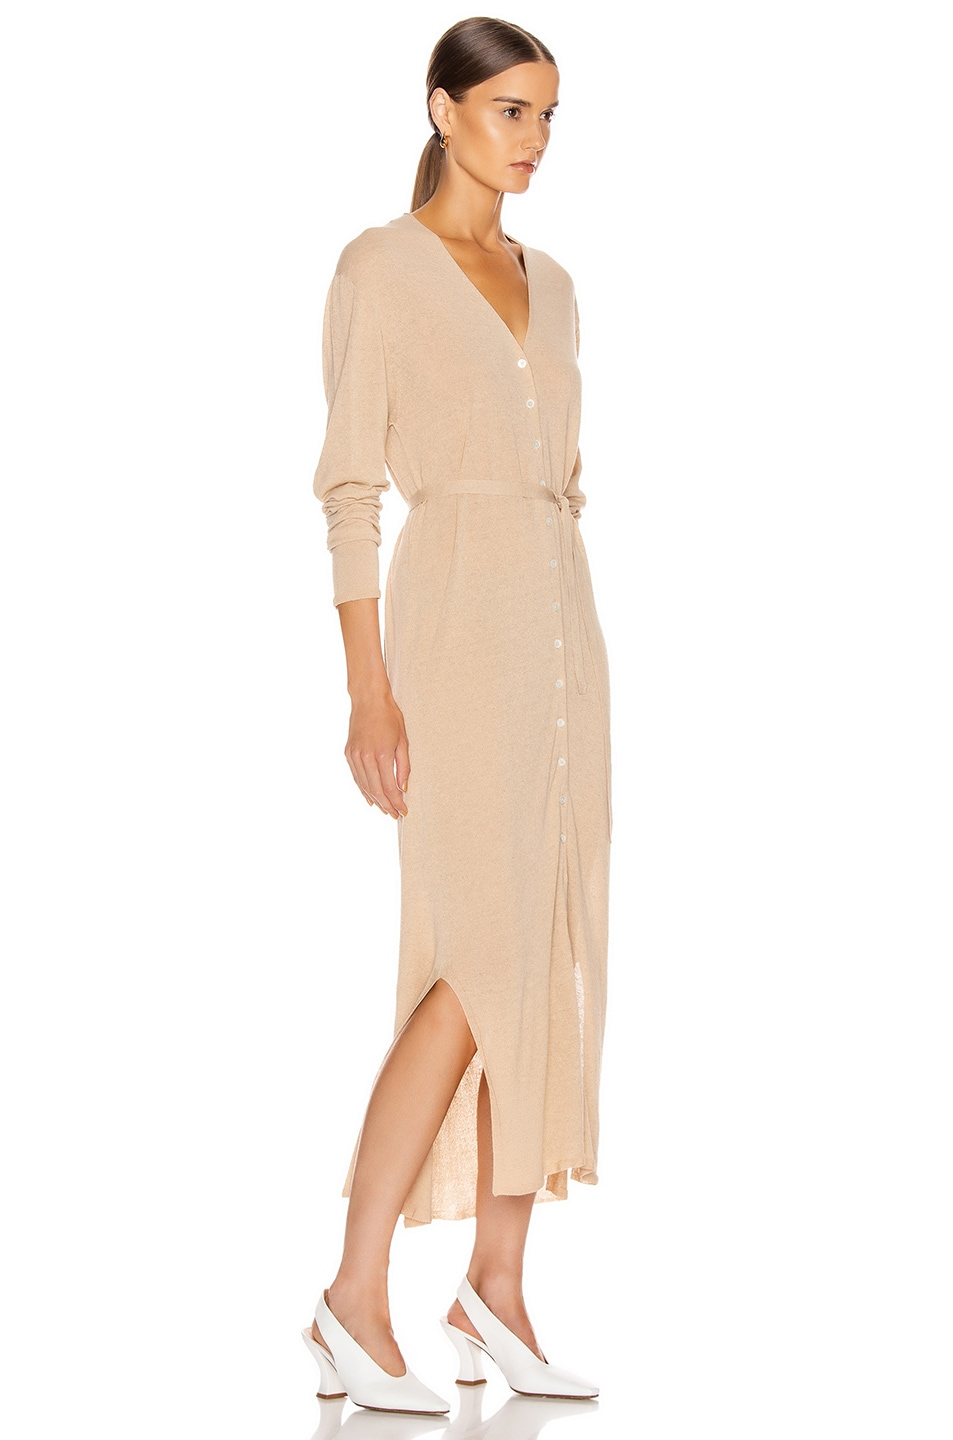 Image 2 of Lemaire Cardigan Dress in Ginger Beige